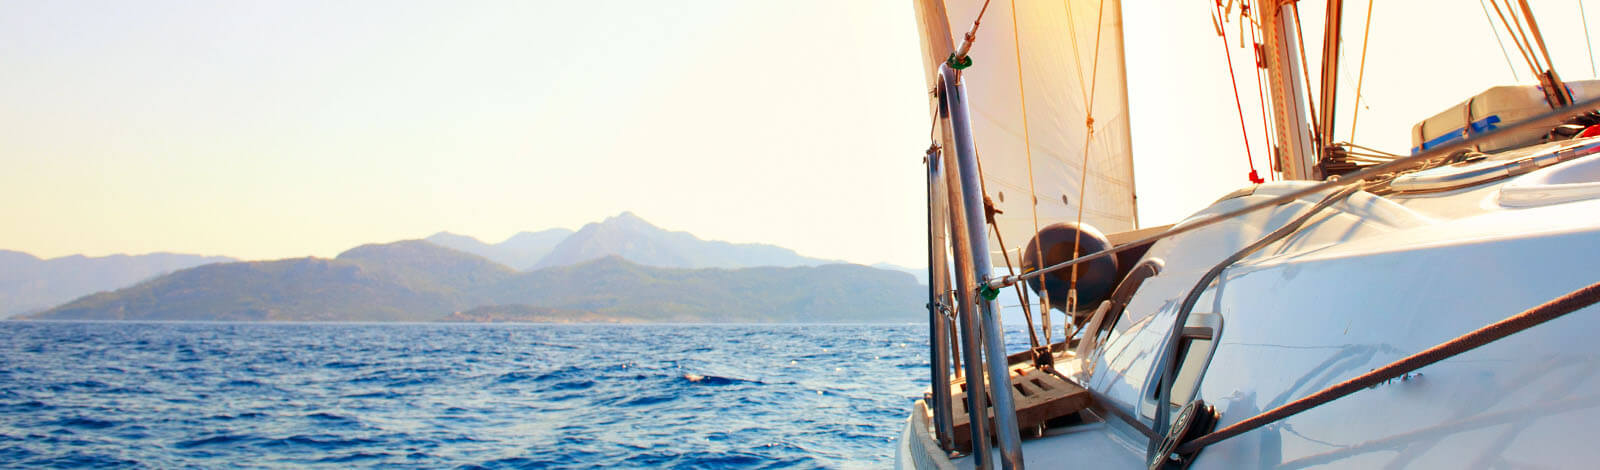 sailboat_header